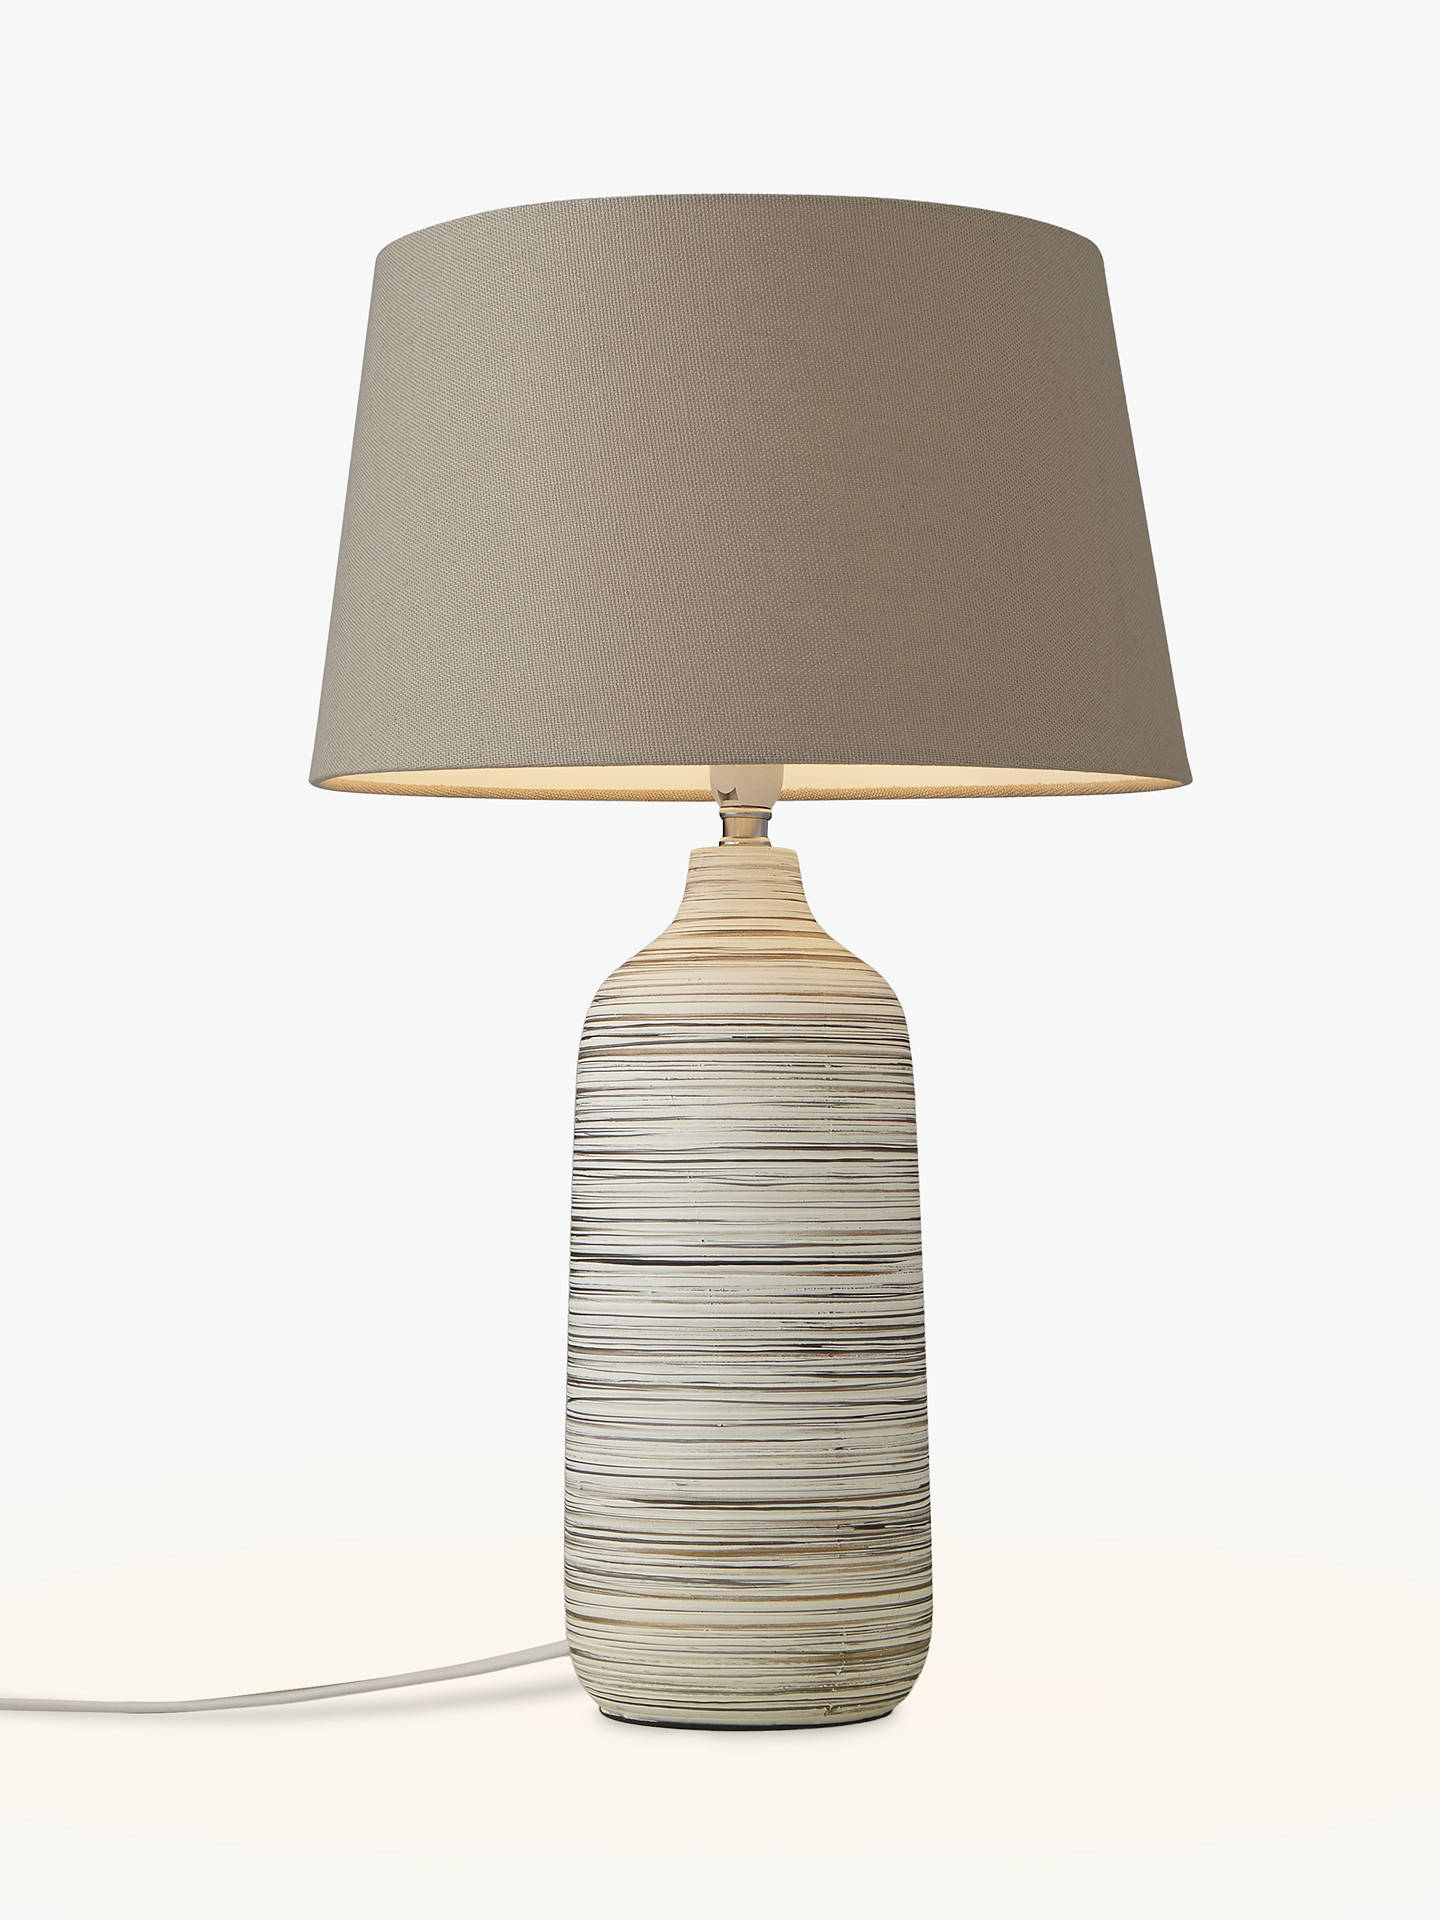 John Lewis Partners Frehel Table Lamp At John Lewis Partners